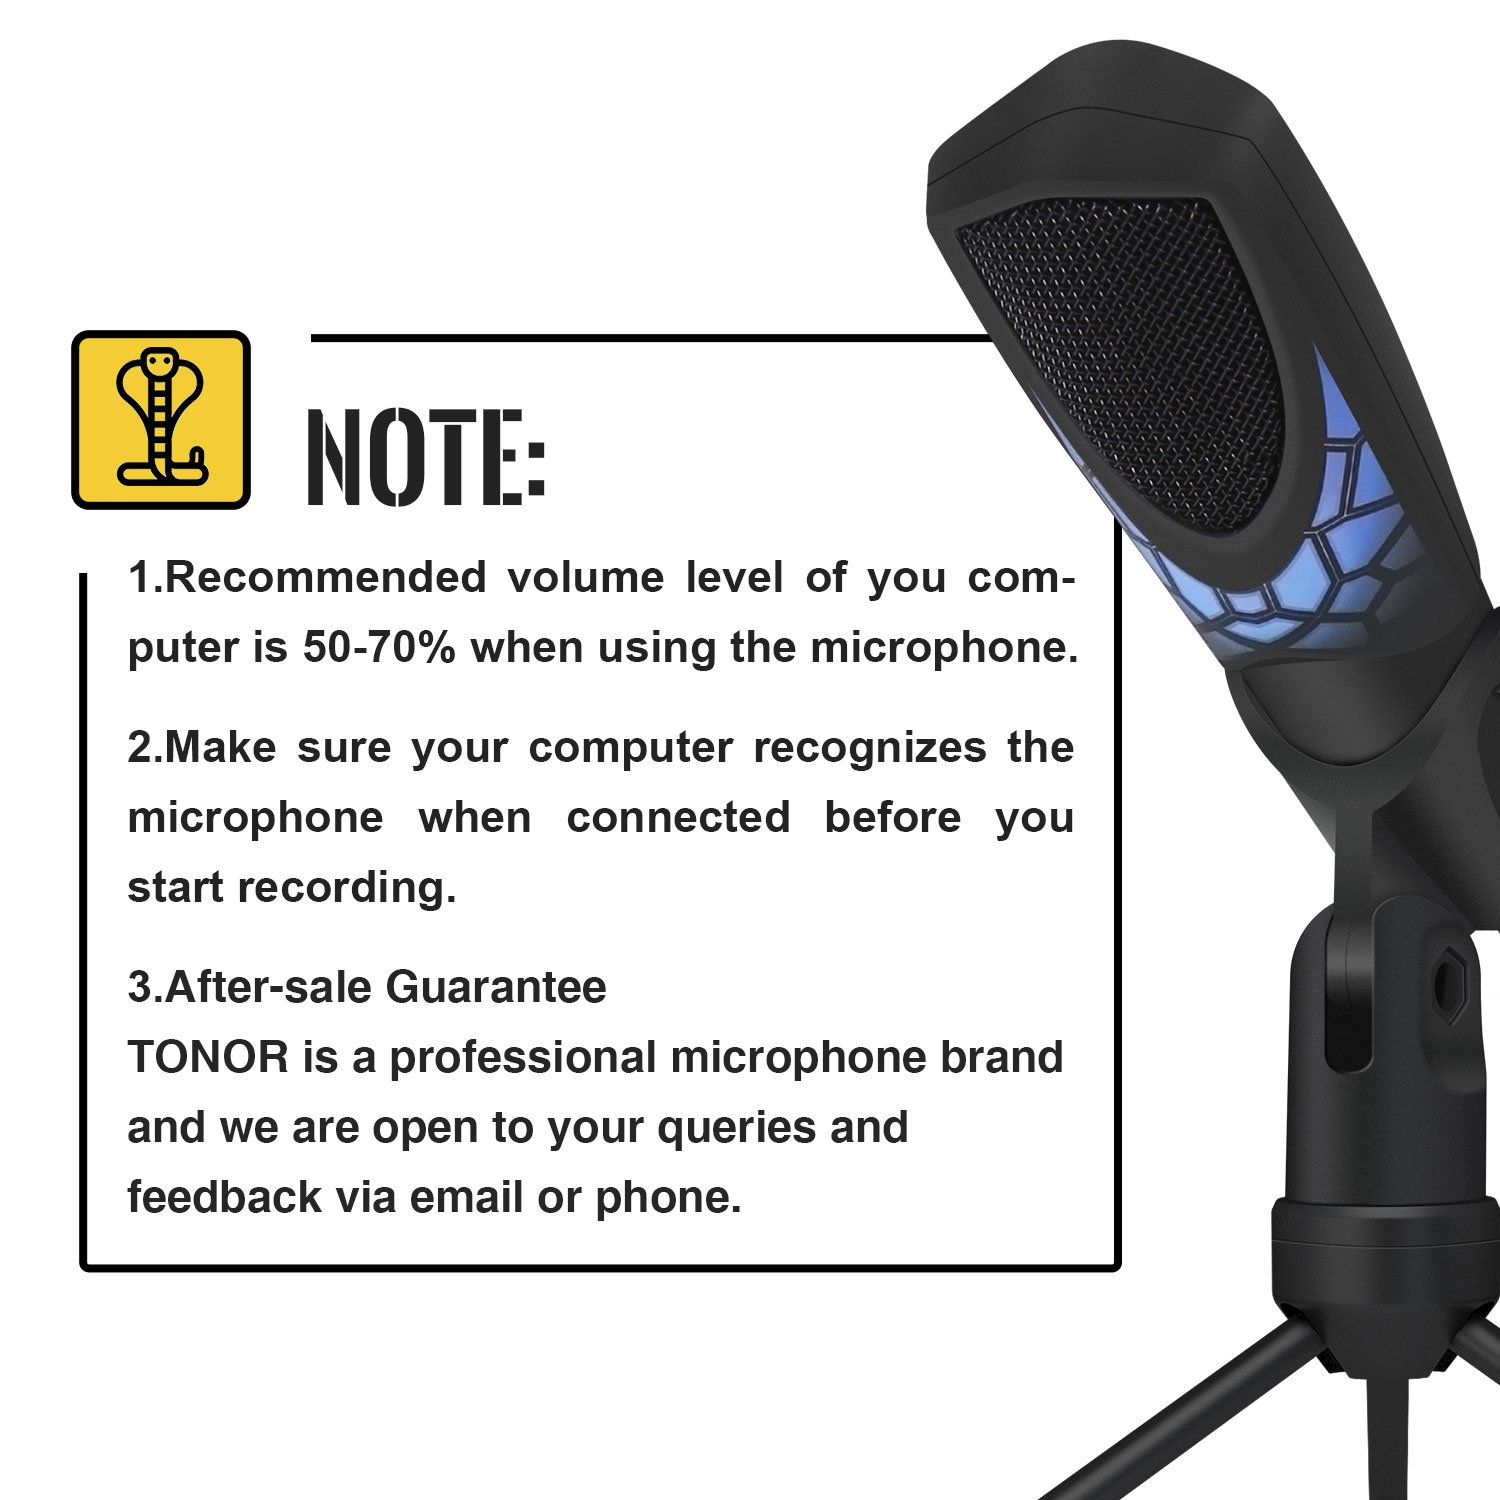 TONOR Gaming Microphone PC USB, Computer Mic Plug & Play for  Gaming/Chatting/Skype/YouTube/Recording/Podcasting for Mac OS X and Windows  PC Computers